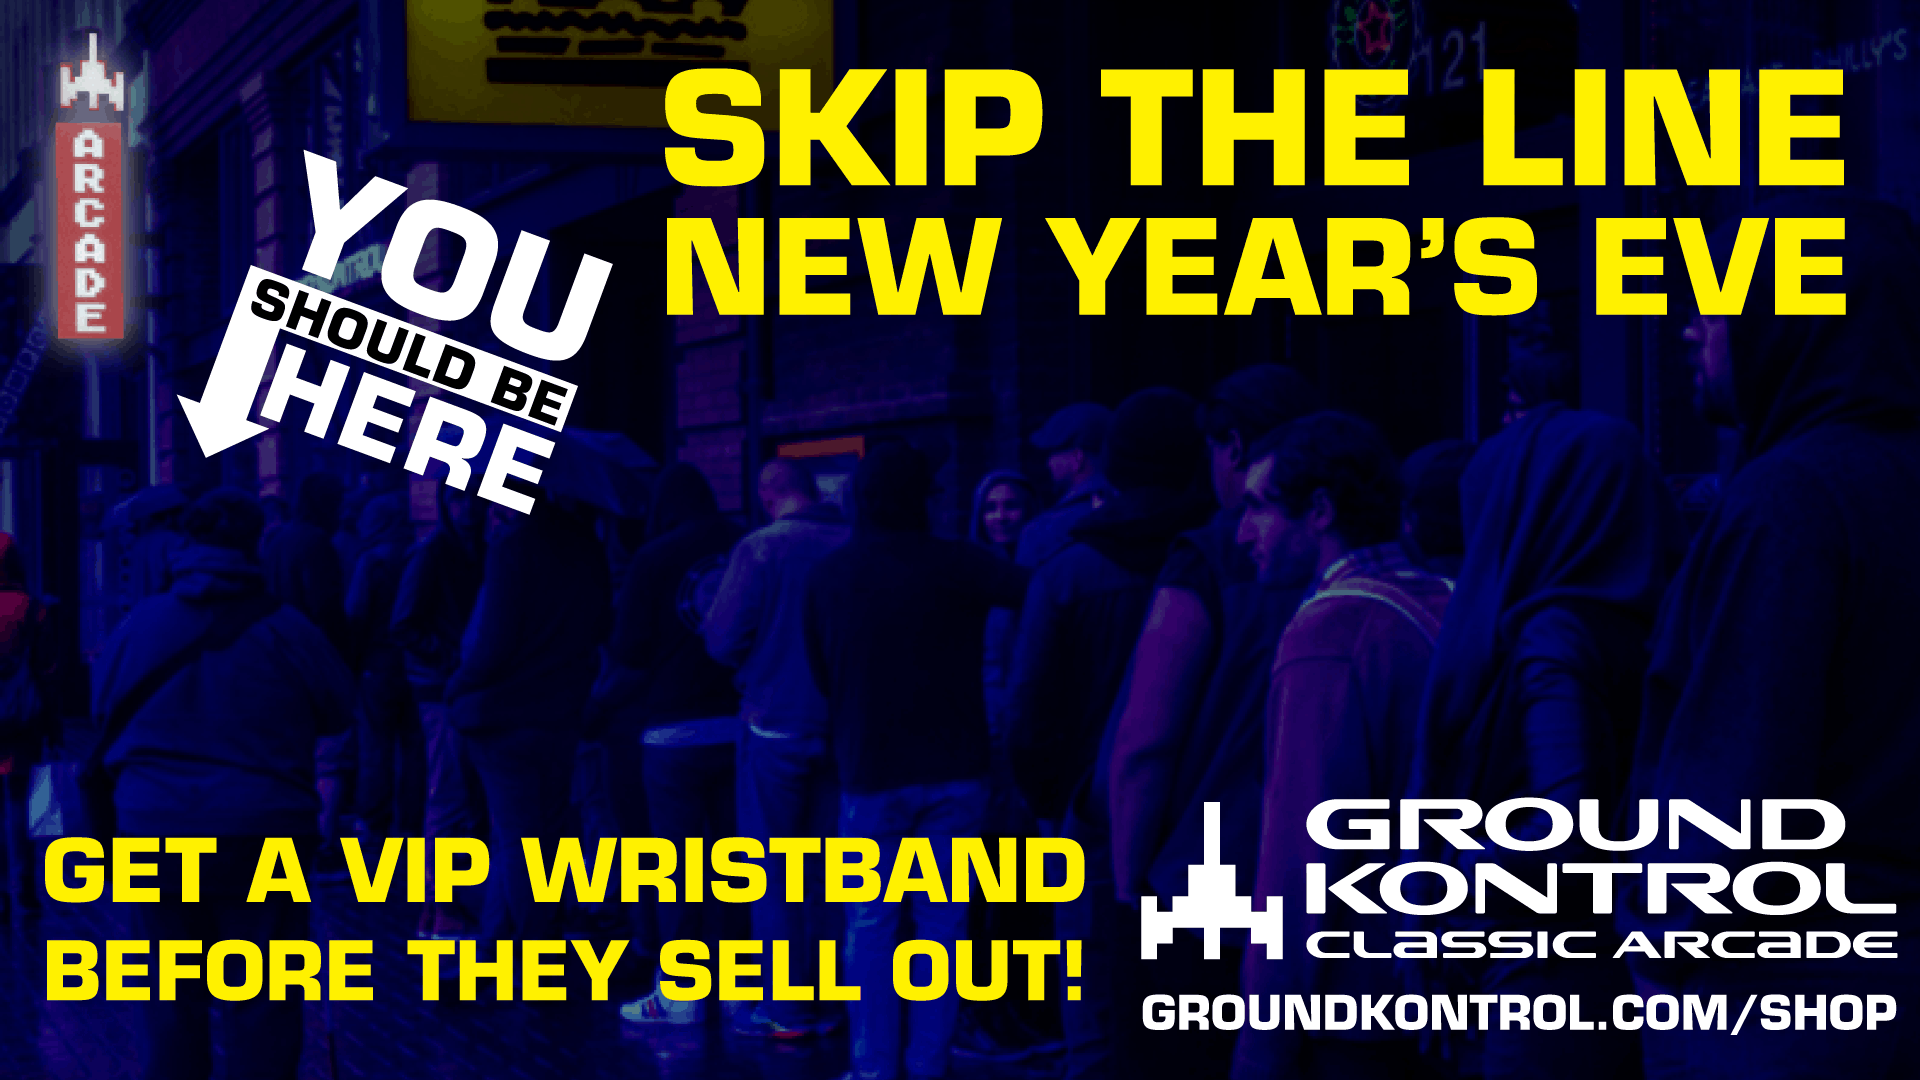 Now Available: New Year's Eve 2019 VIP Wristbands – While They Last!